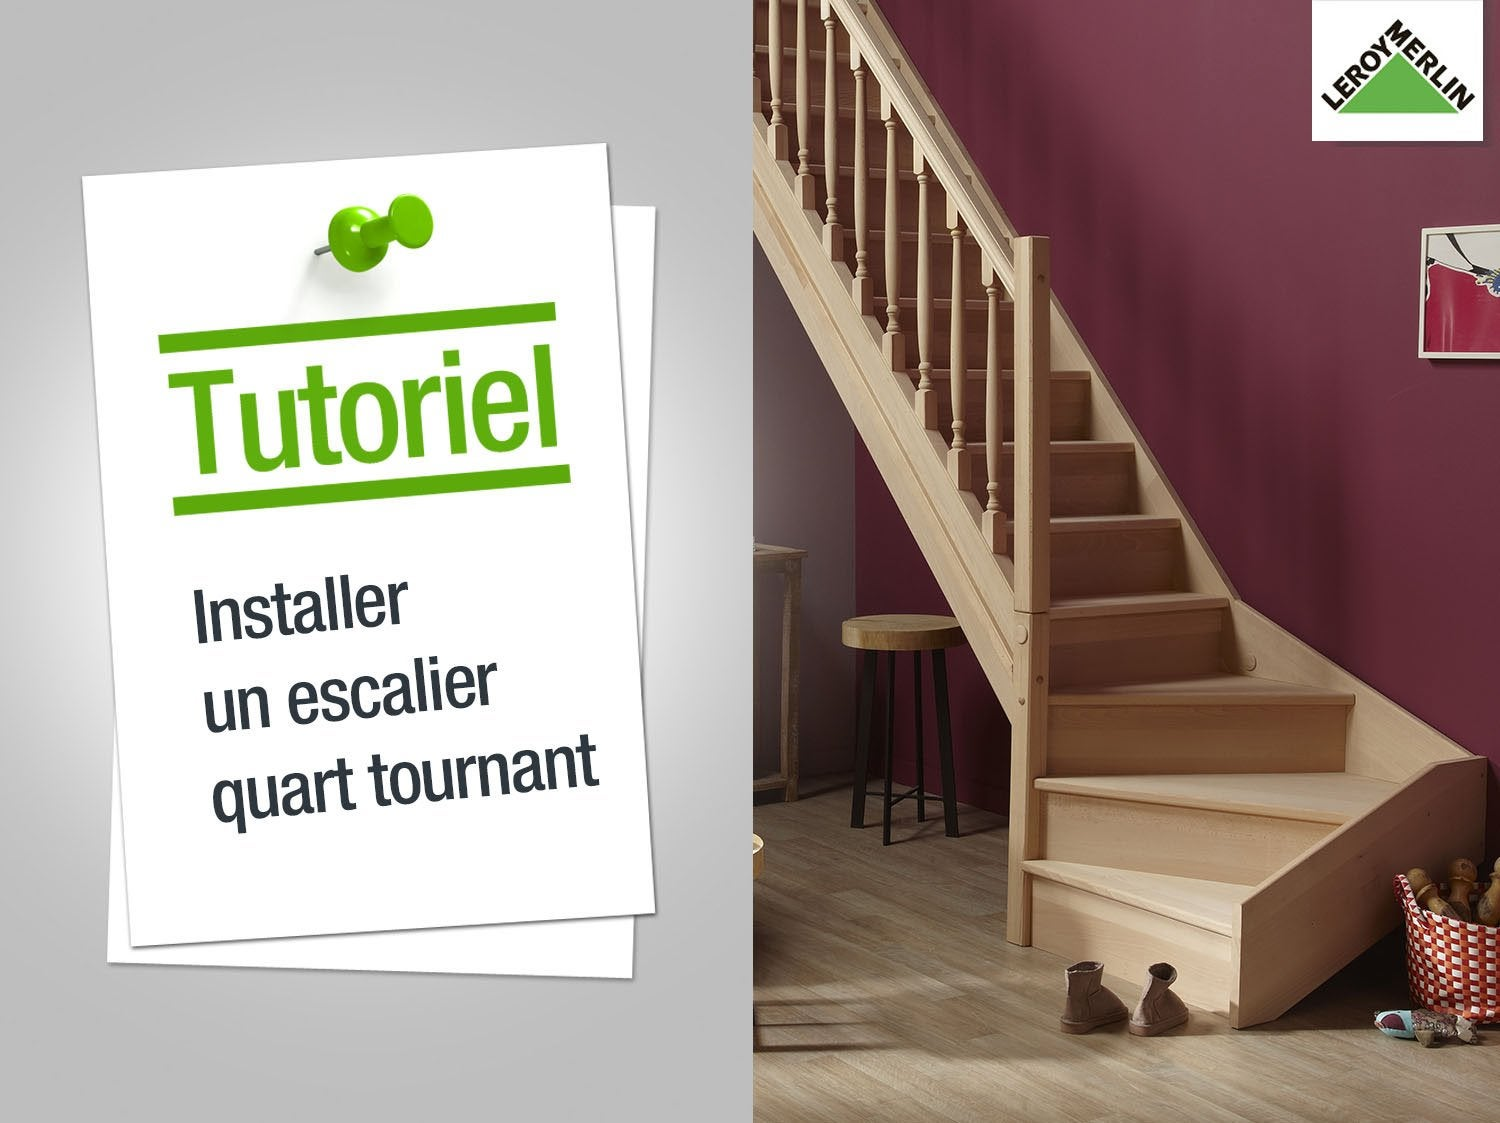 comment installer un escalier quart tournant leroy merlin - Rampe Escalier Brico Depot1998